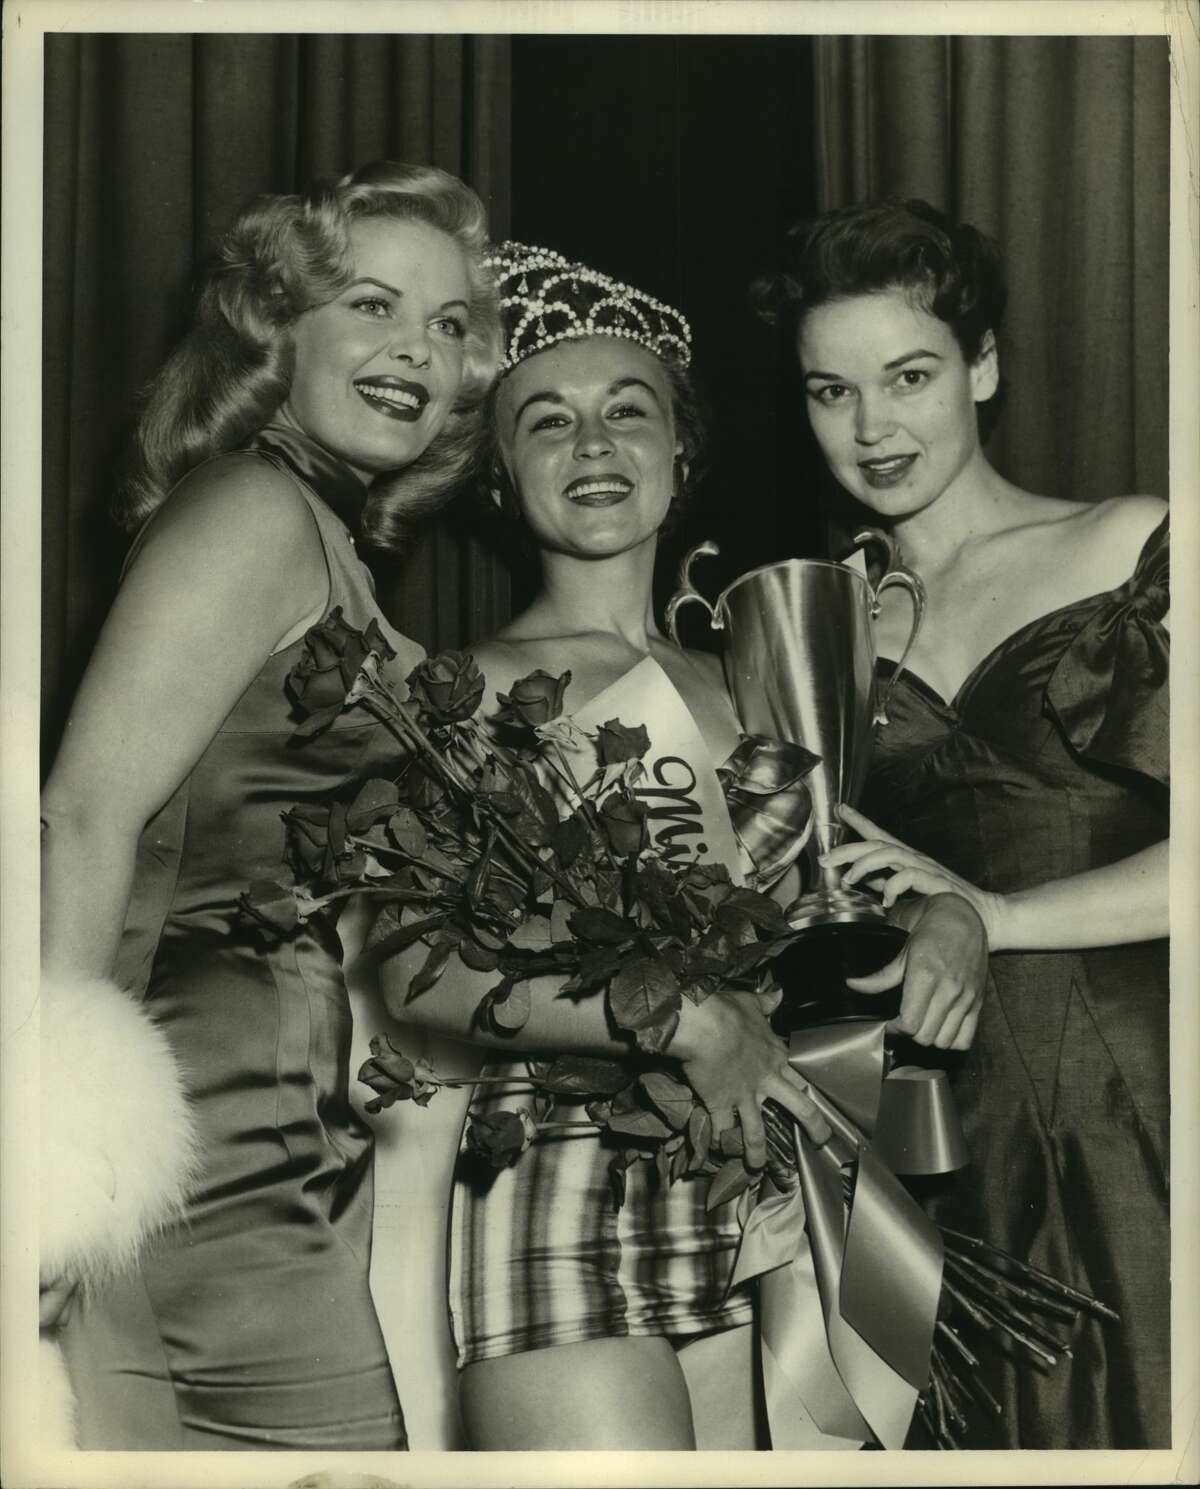 July 7, 1955. Pictured, left to right: Cleo Moore (movie star); Sue Carol Brogier (Miss Houston), Katherine Grandstaff (actress).